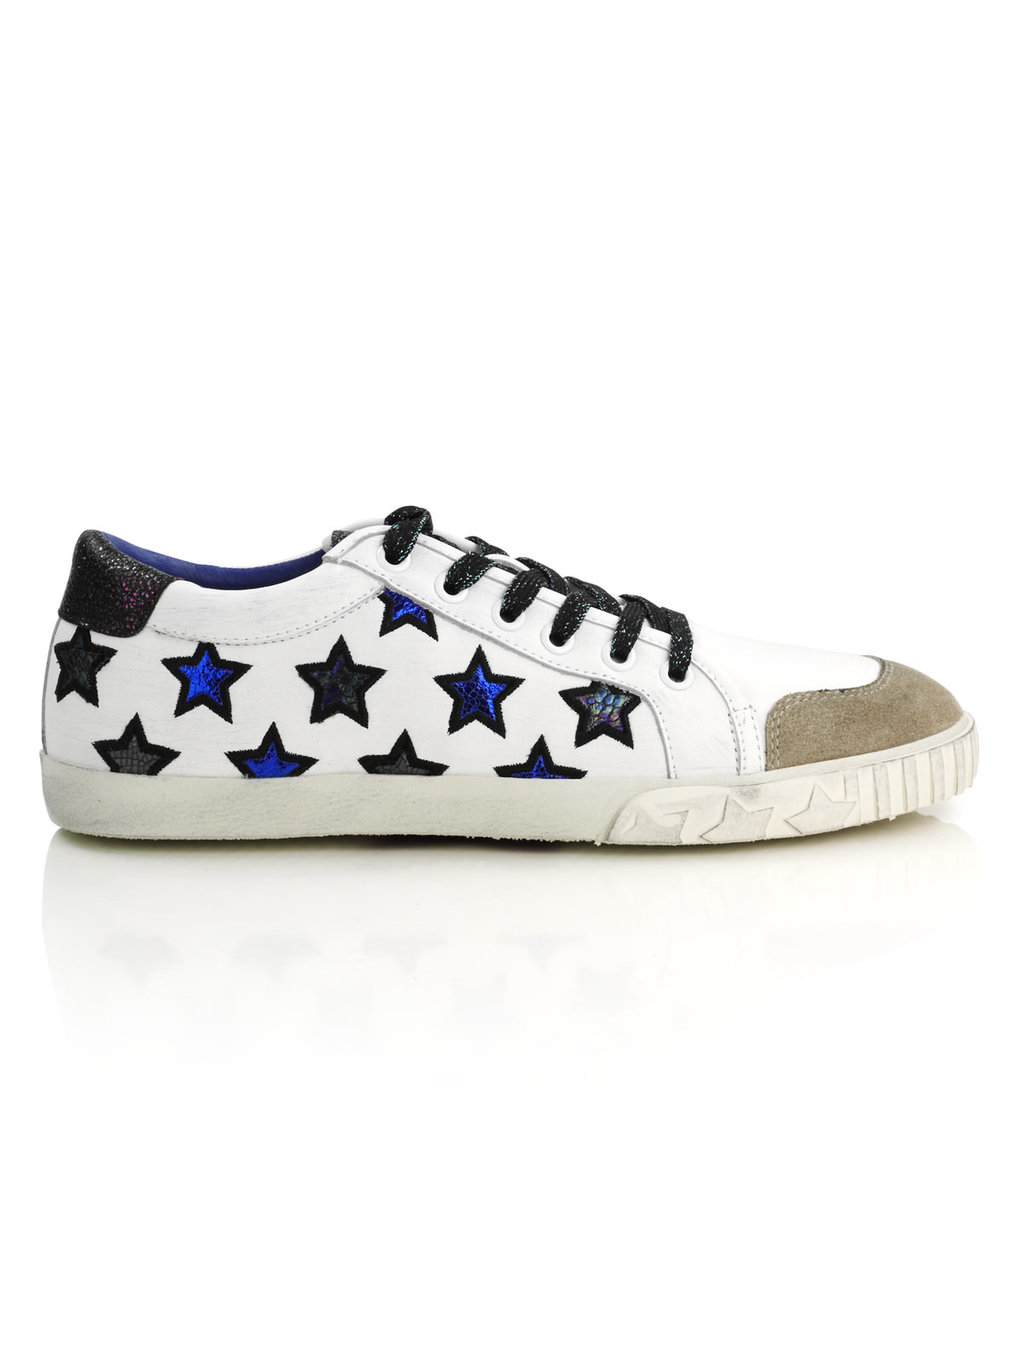 Majestic Trainer - predominant colour: white; occasions: casual, activity; material: leather; heel height: flat; toe: round toe; style: trainers; finish: plain; pattern: patterned/print; season: a/w 2016